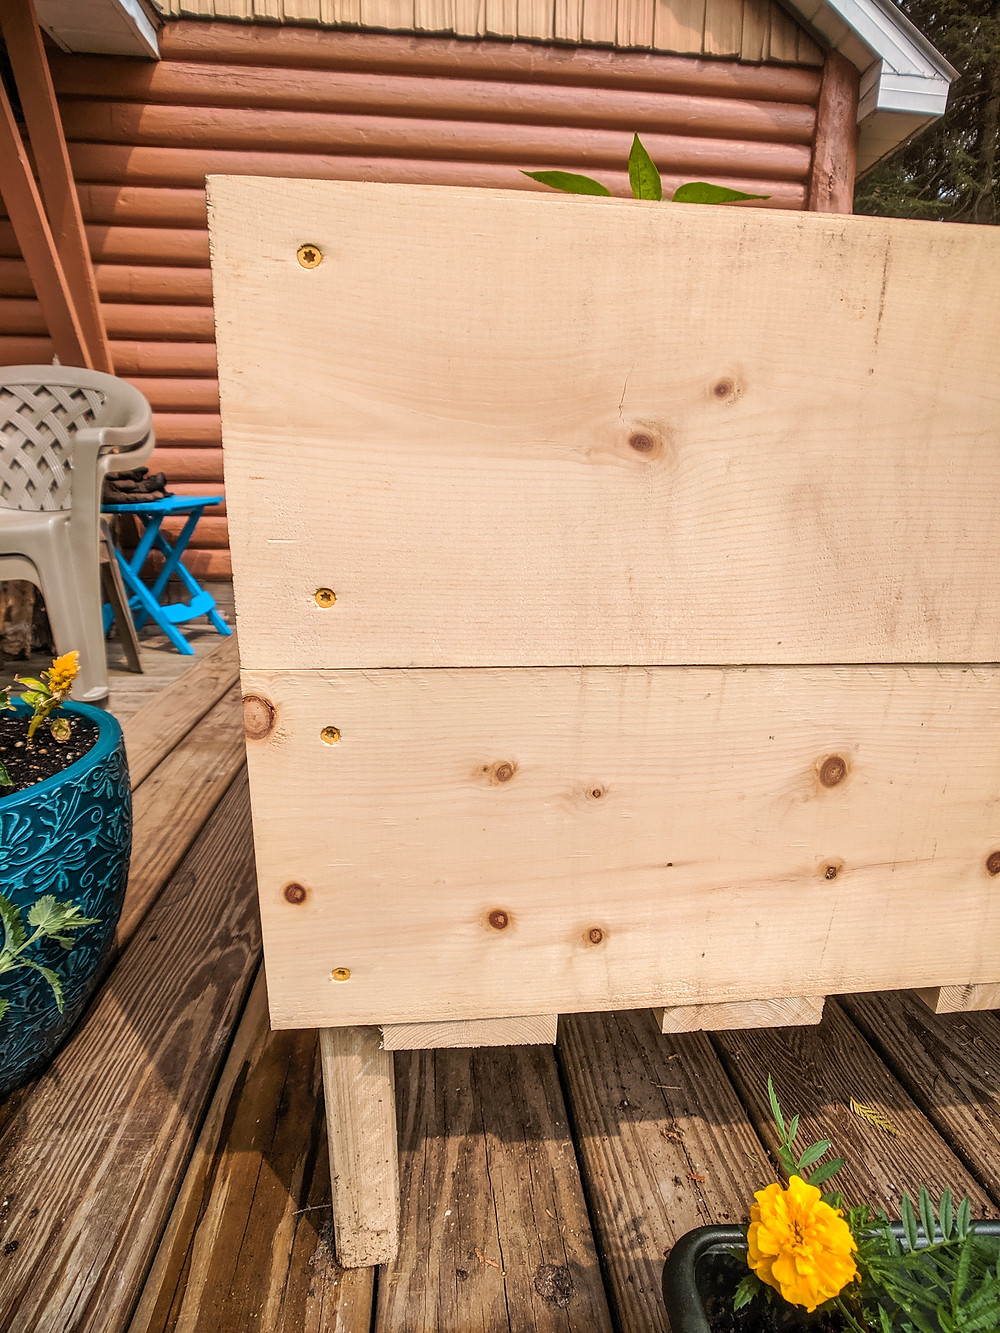 A close up of the DIY raised garden beds for a small space in Northern Michigan.